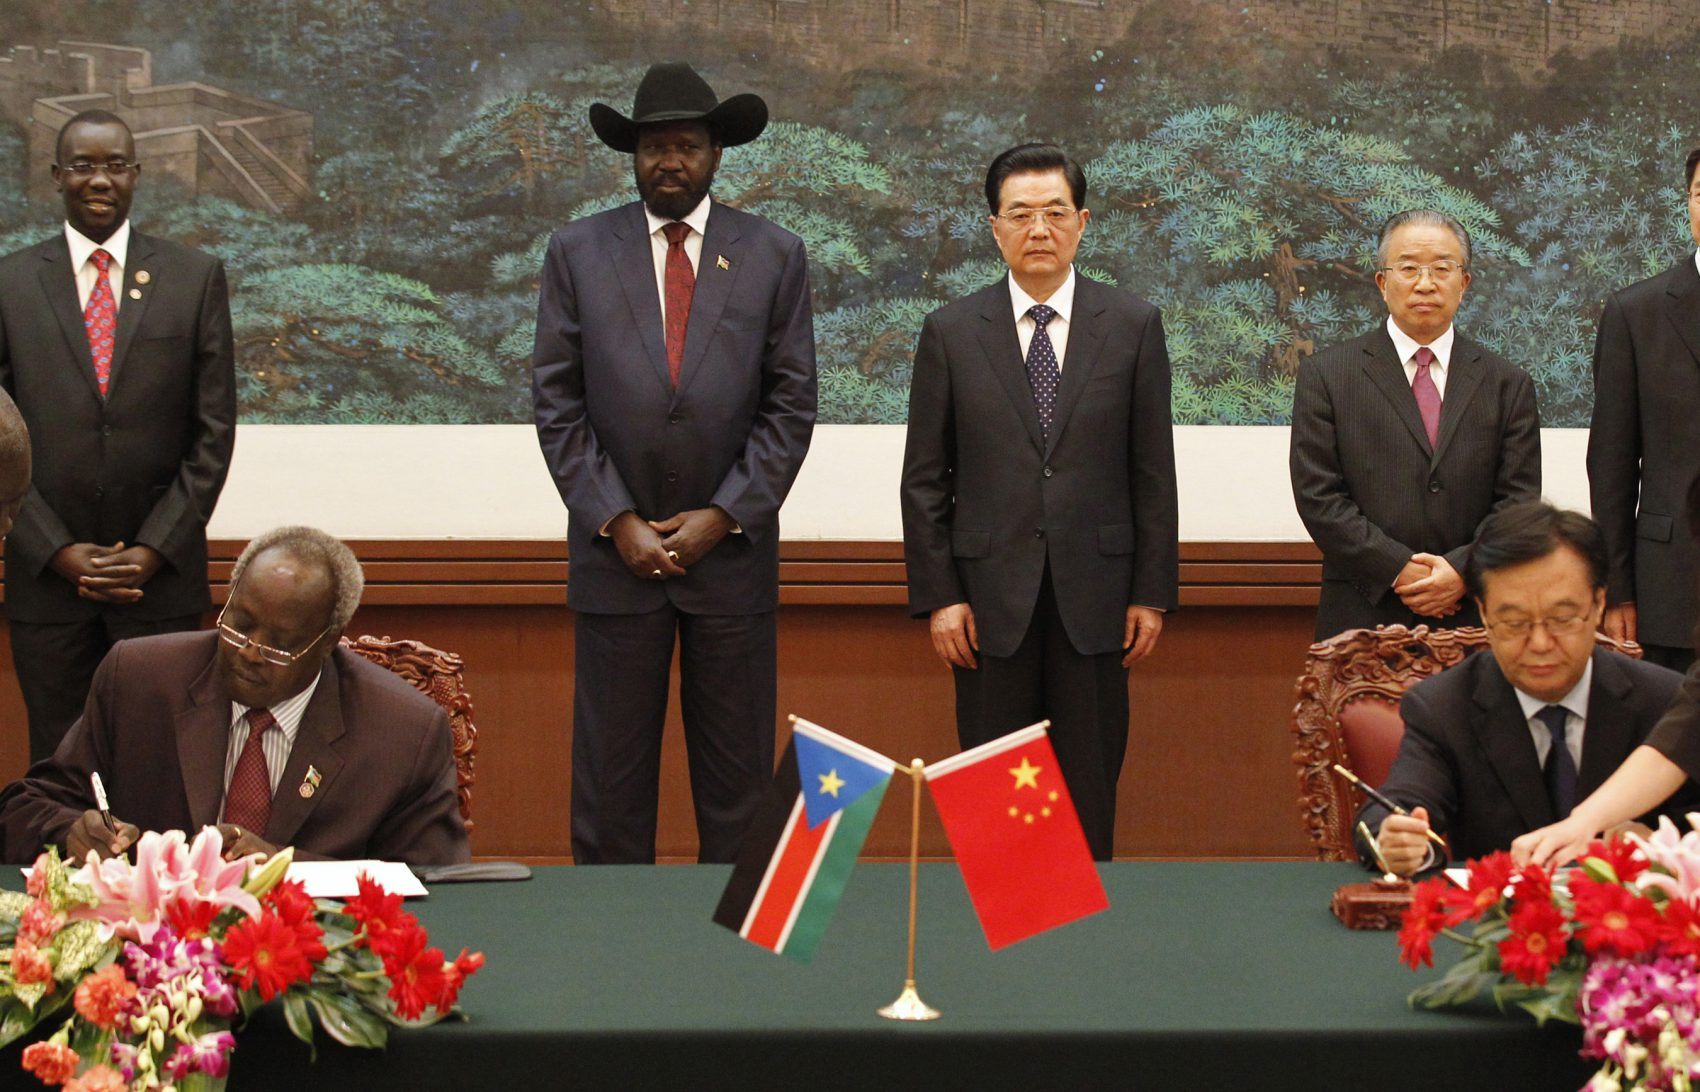 South Sudan President Salva Kiir Mayardit (centre L) and his Chinese counterpart Hu Jintao (centre R) attend a signing ceremony at the Great Hall of the People in Beijing April 24, 2012. Hu told Kiir on Tuesday that he hoped for calm and restraint between the two Sudans, state television reported. Kiir's visit to Beijing comes days after he ordered troops to withdraw from the oil-rich Heglig region after seizing it from Sudan, a move that brought the two countries to the brink of all-out war.